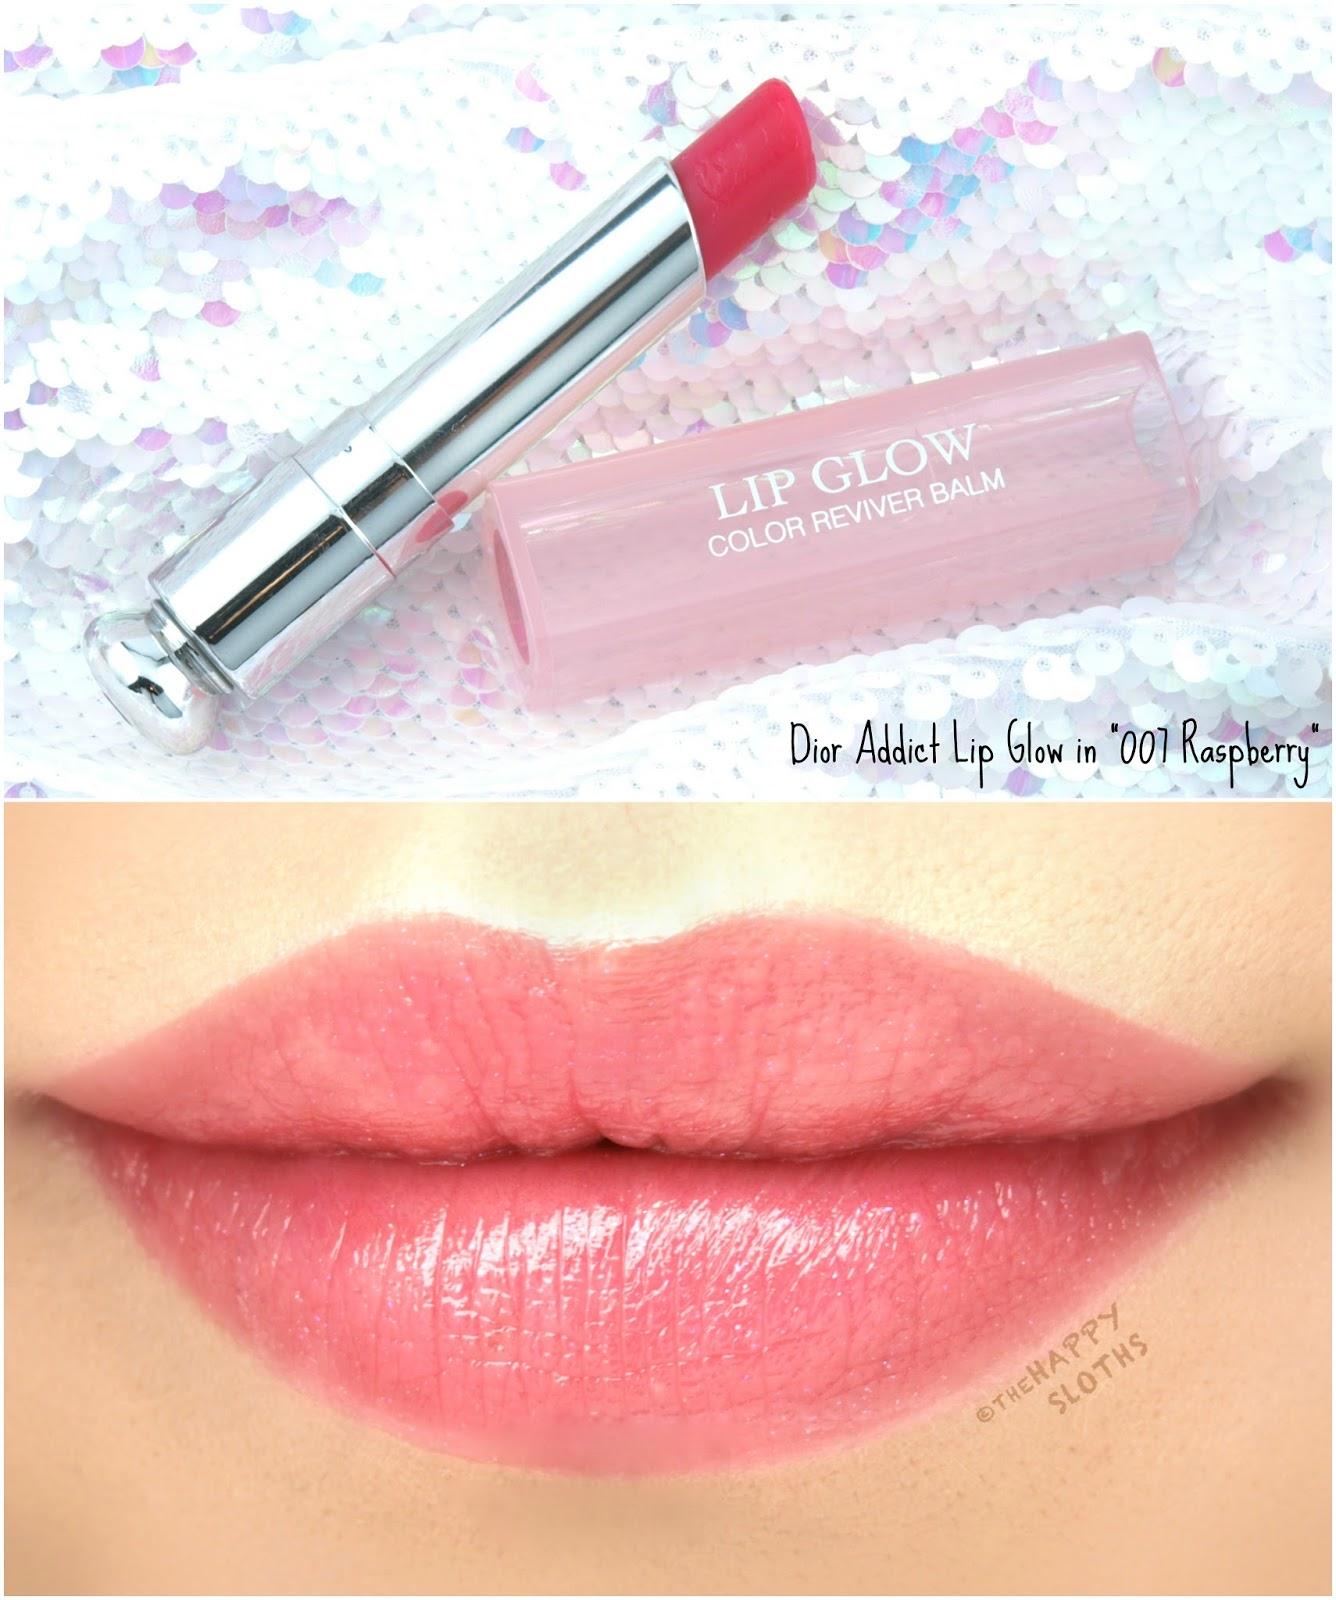 "Dior Addict Lip Glow Color Reviver Balm in ""007 Raspberry"": Review and Swatches"